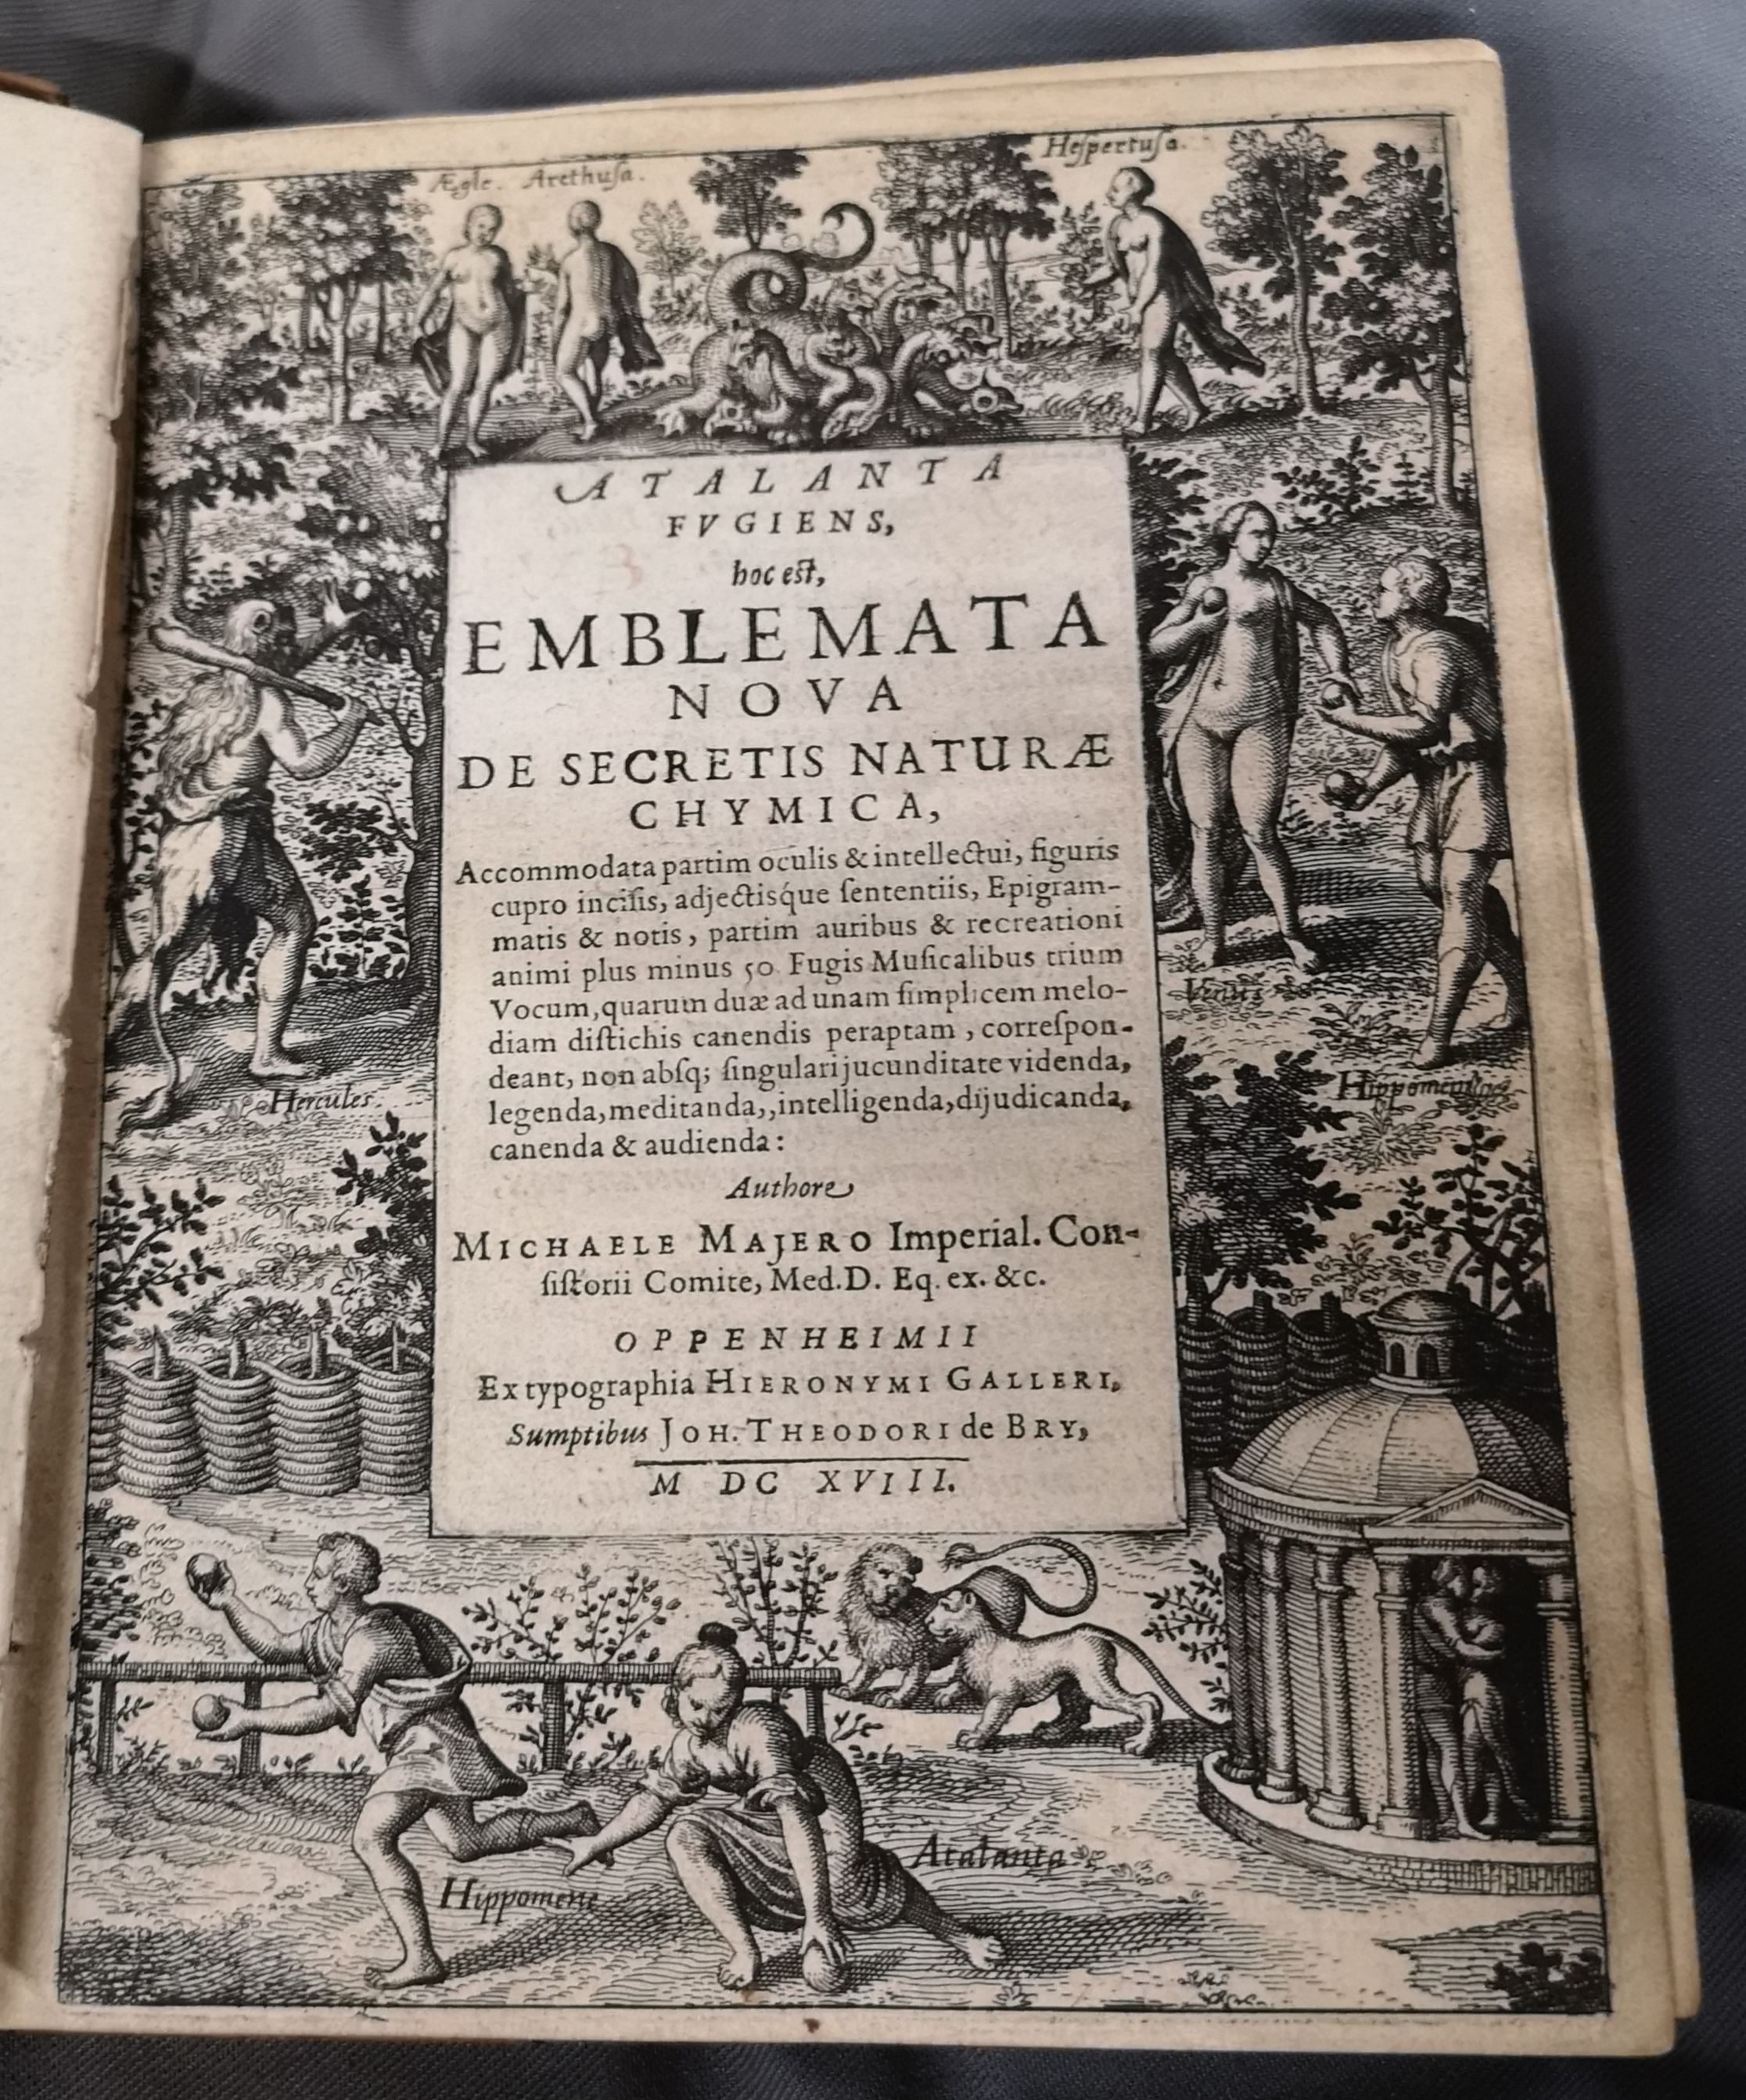 Title page from 'Emblemata Nova'